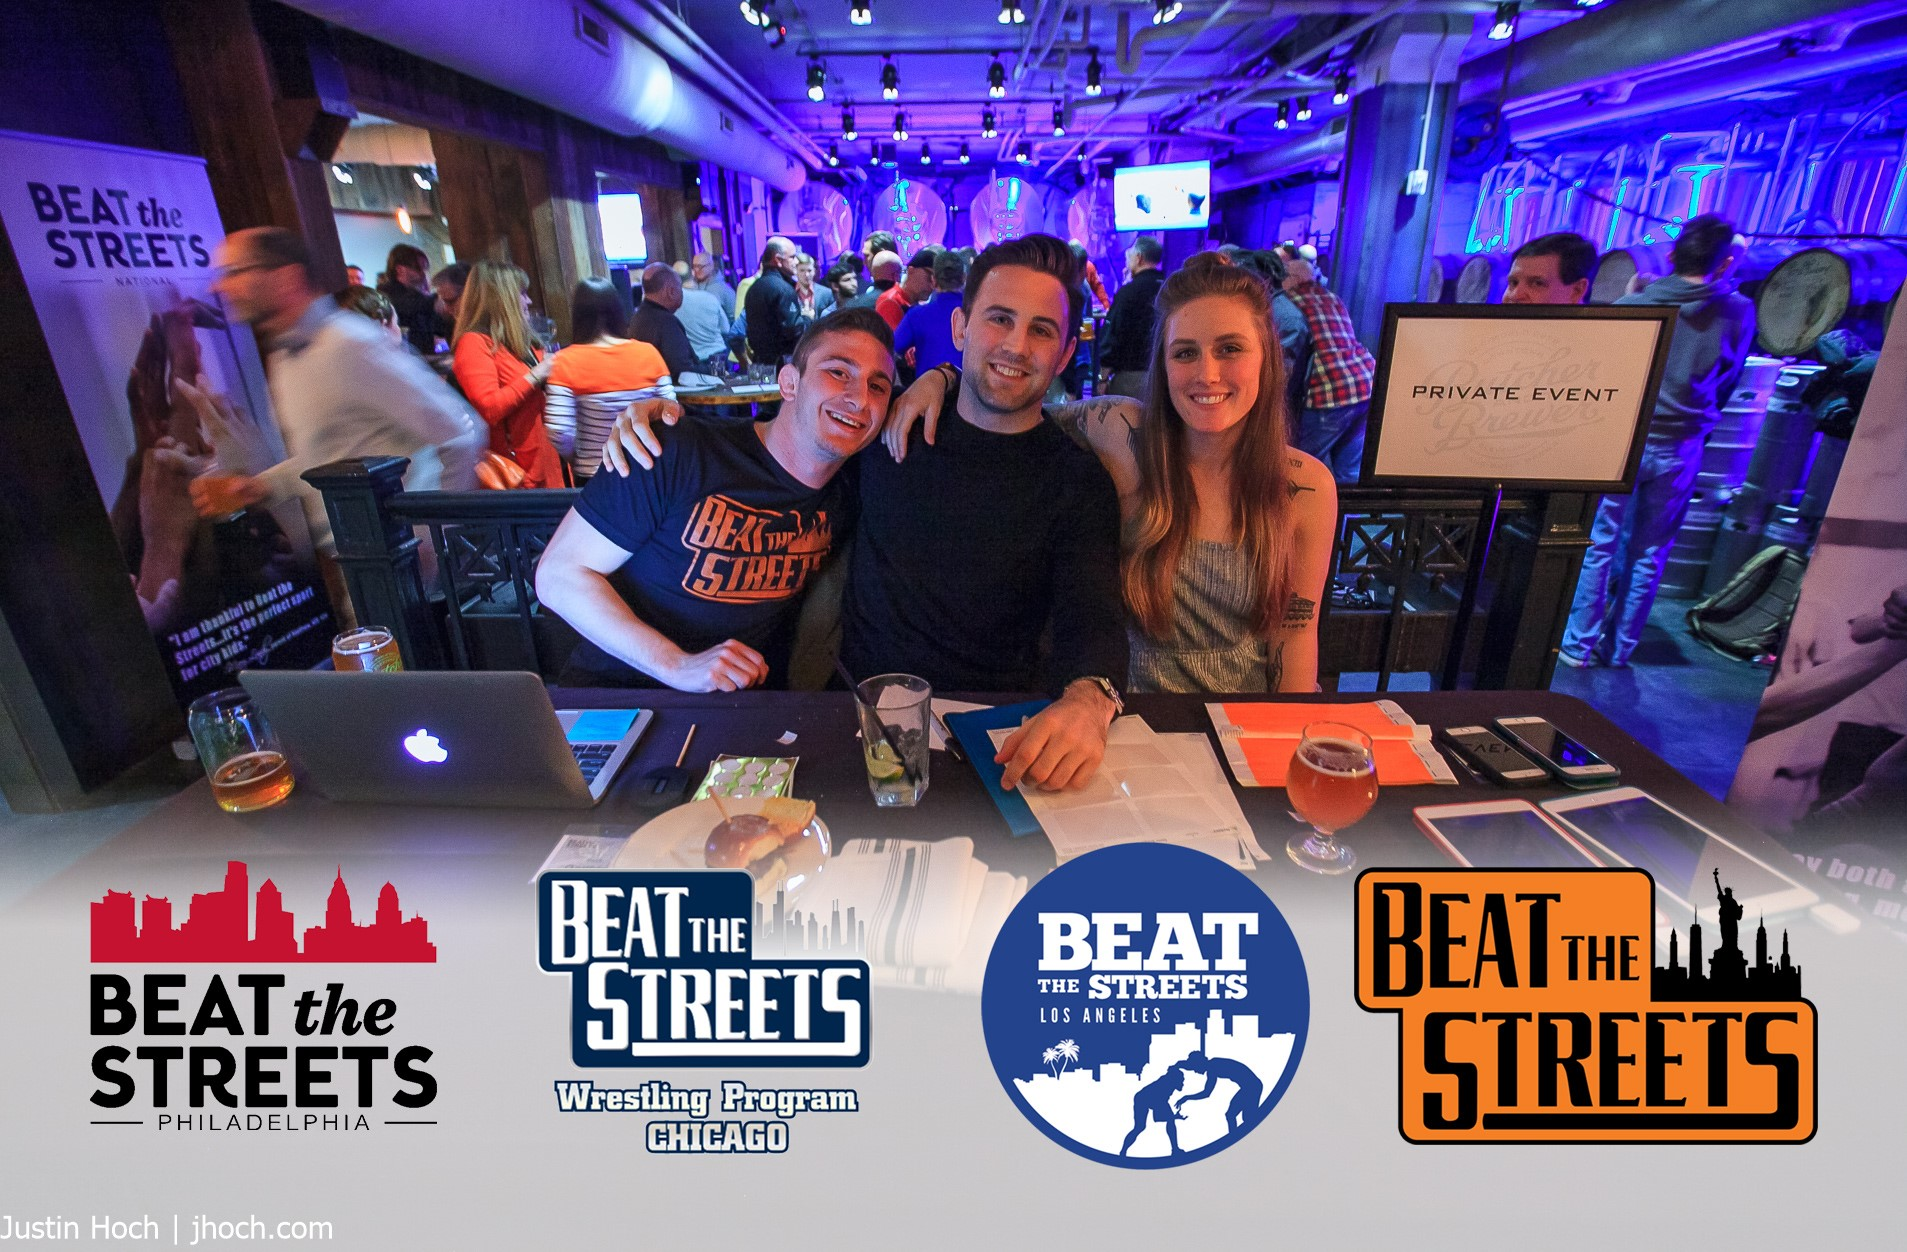 Press Release: Beat the Streets National Supporting Youth Development Programs to Grow Wrestling Opportunities